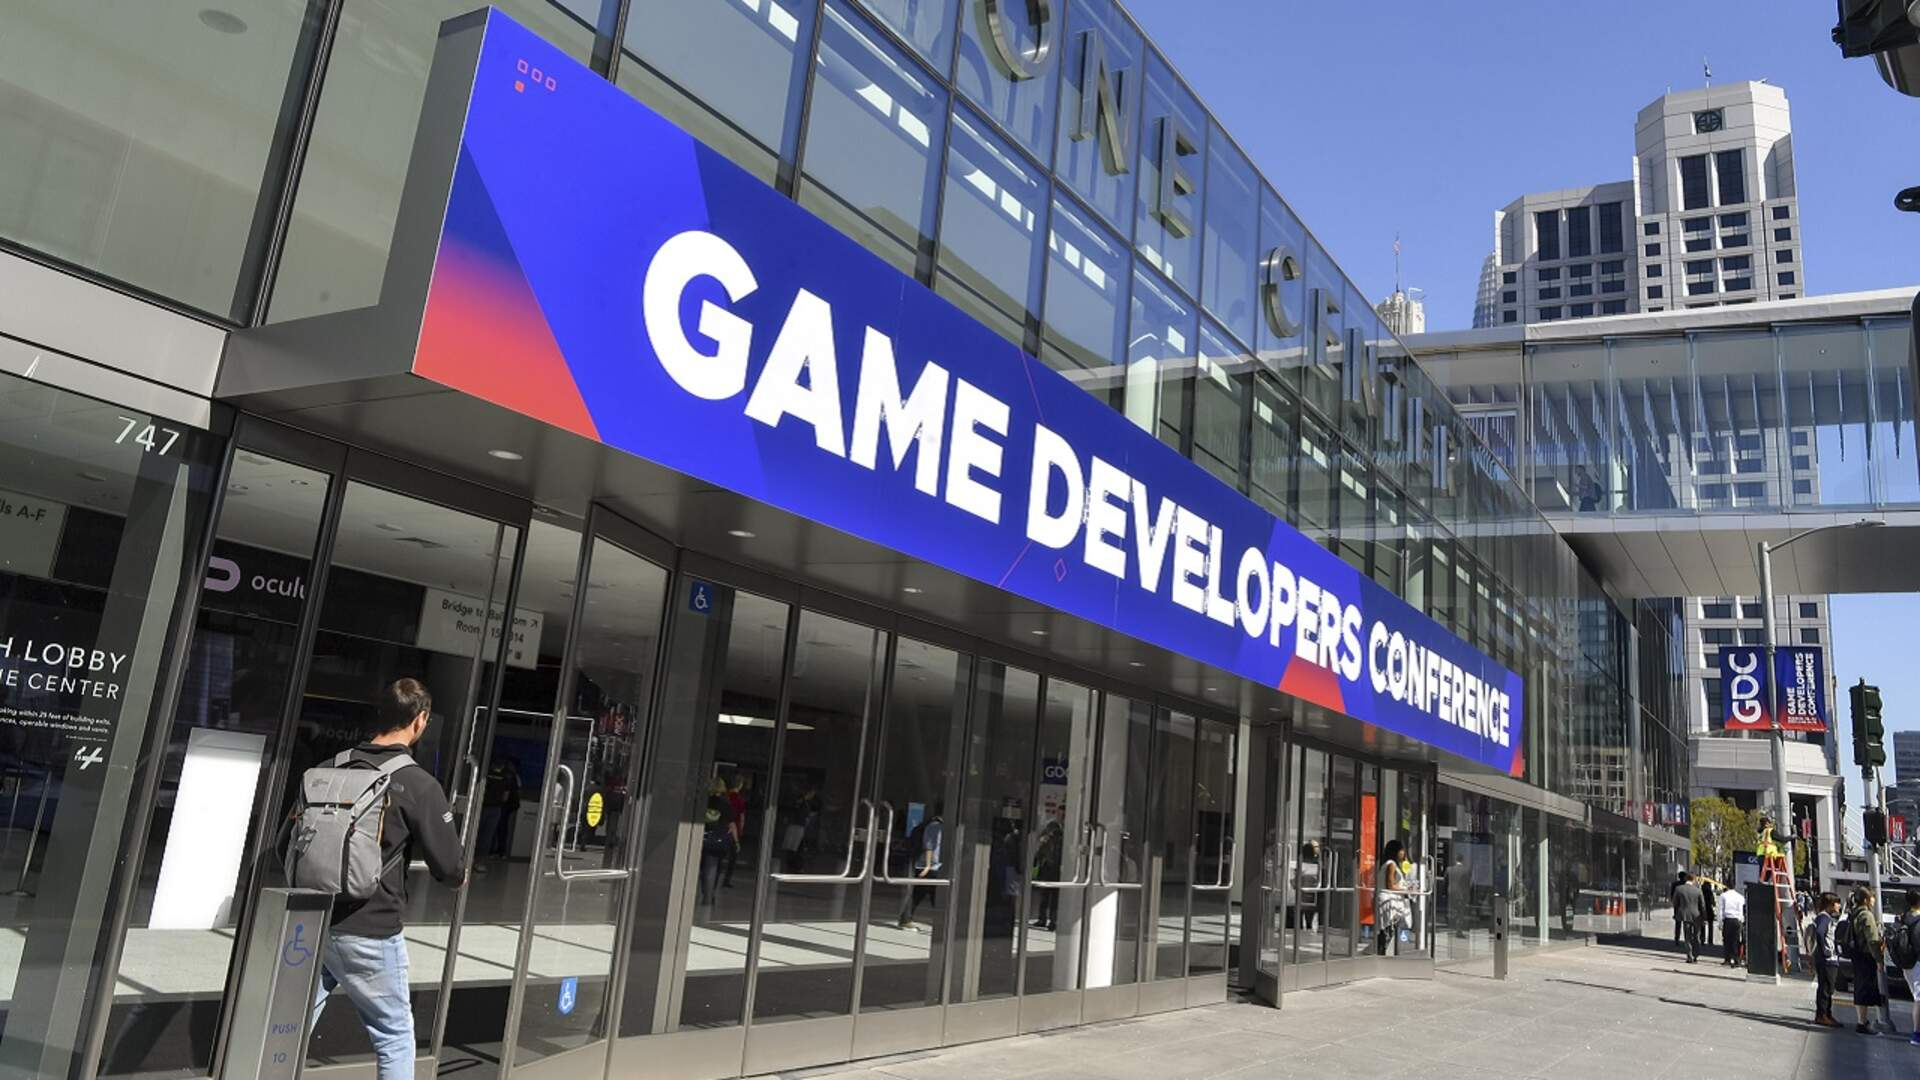 A Third of Developers Say COVID-19 Has Led to Game Delays